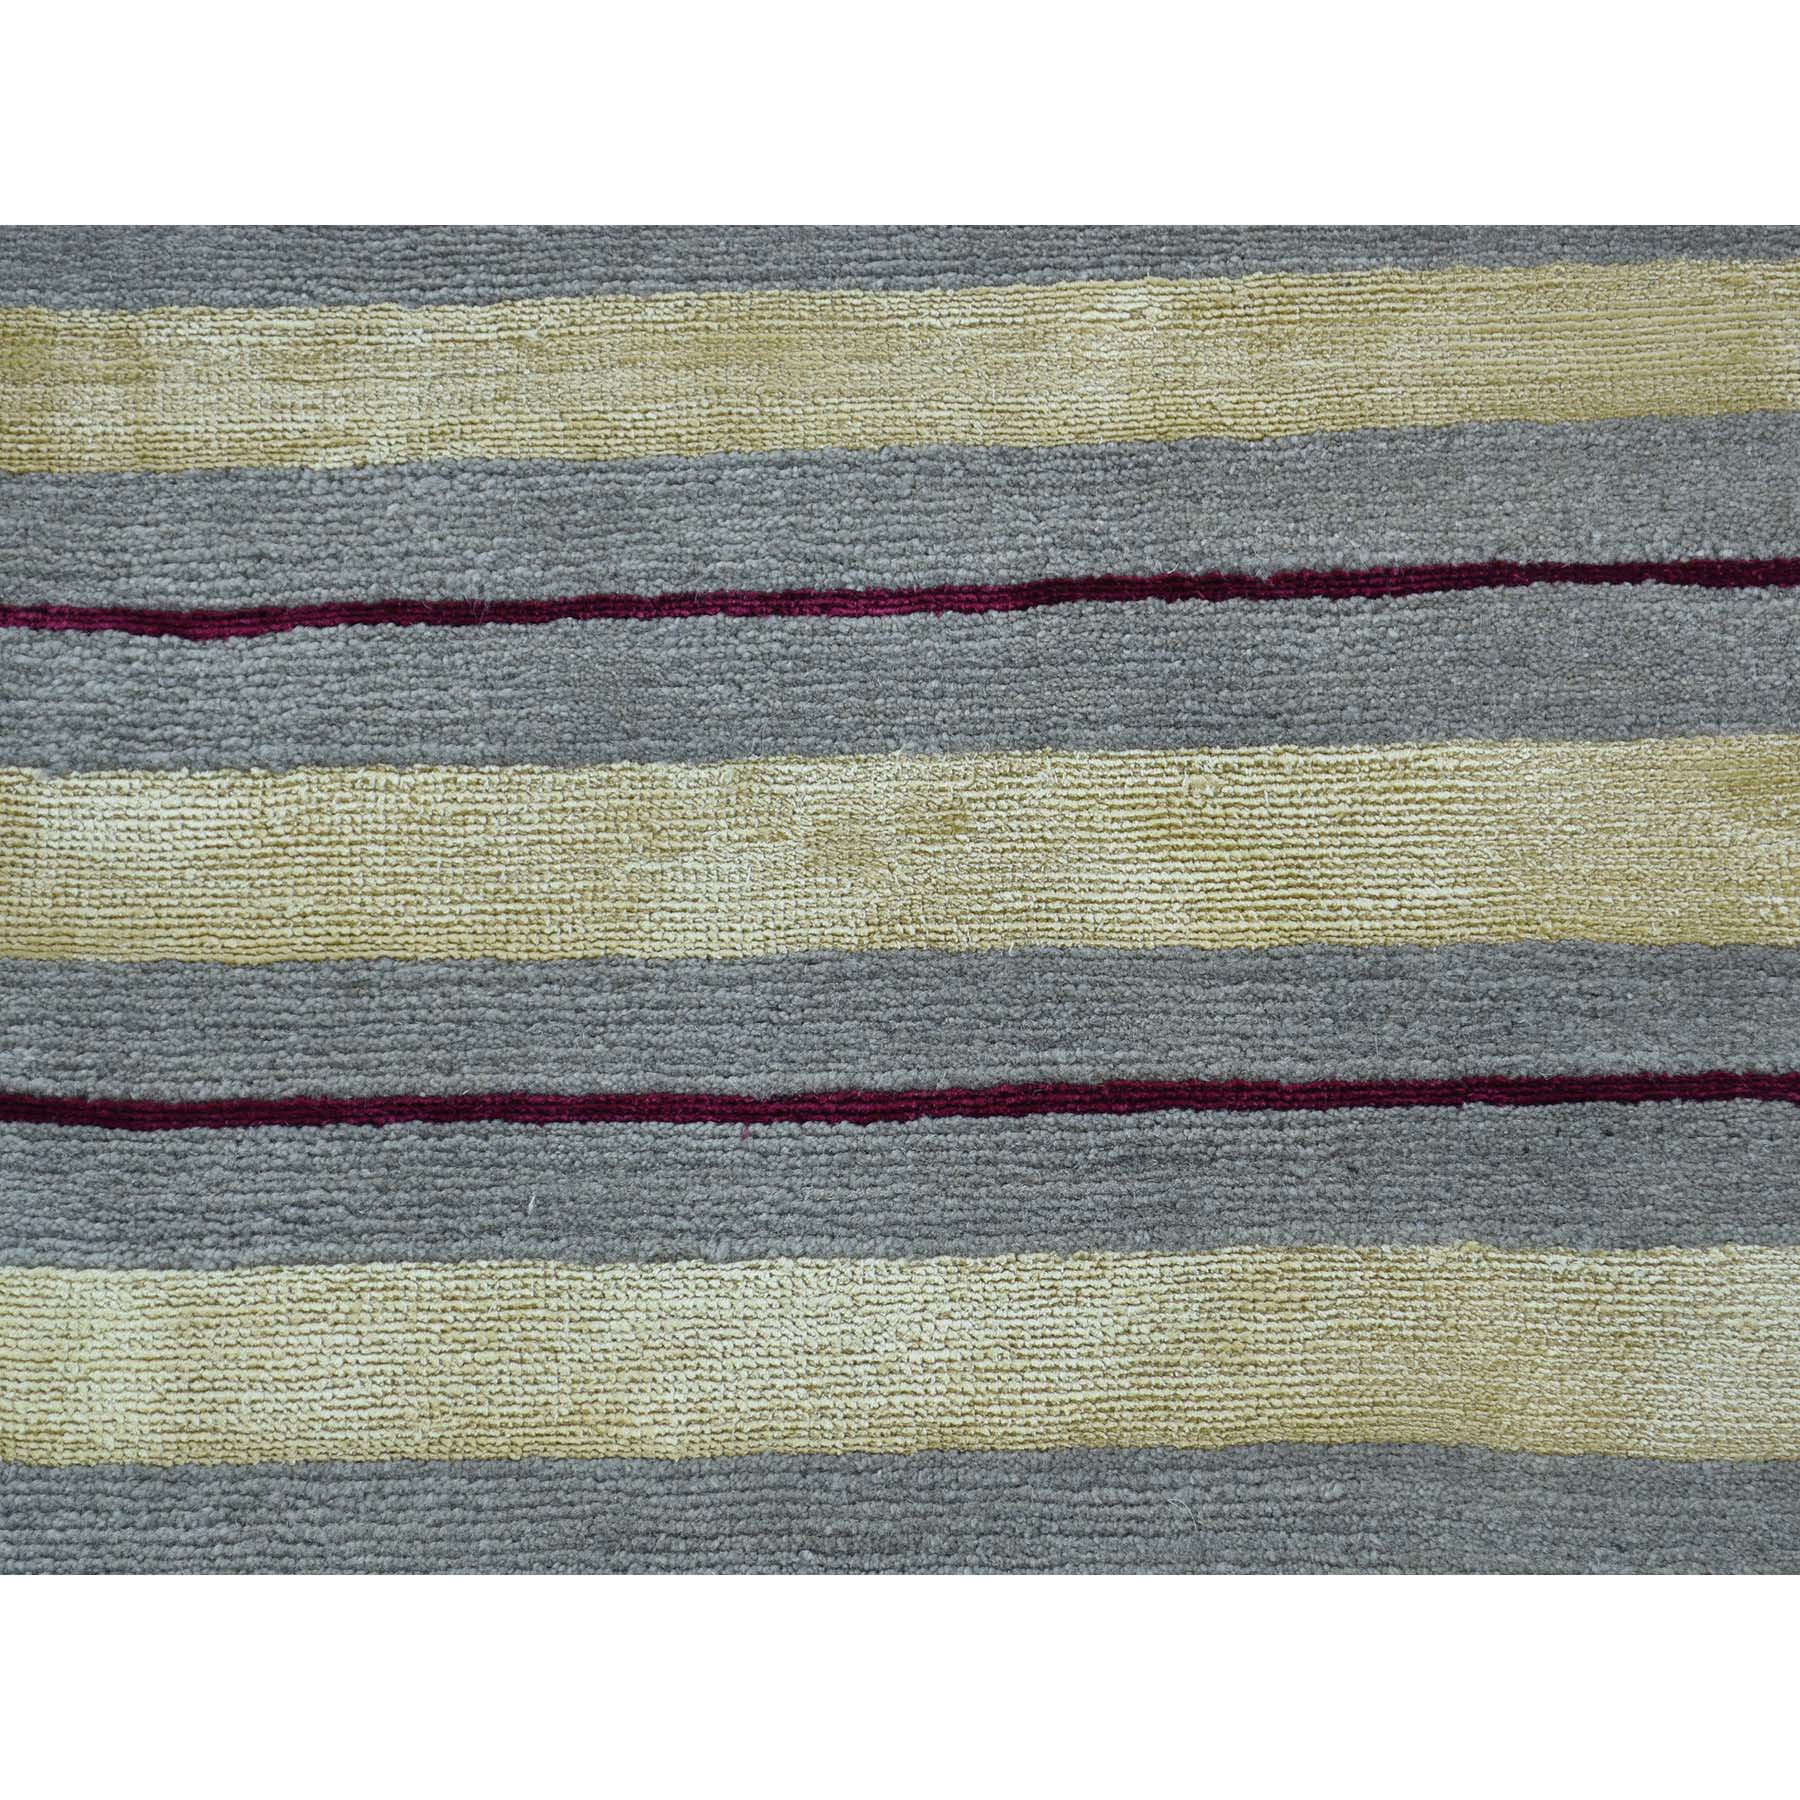 1-8 x2-7  Hand-Knotted Modern Nepali Wool and Silk Oriental Rug